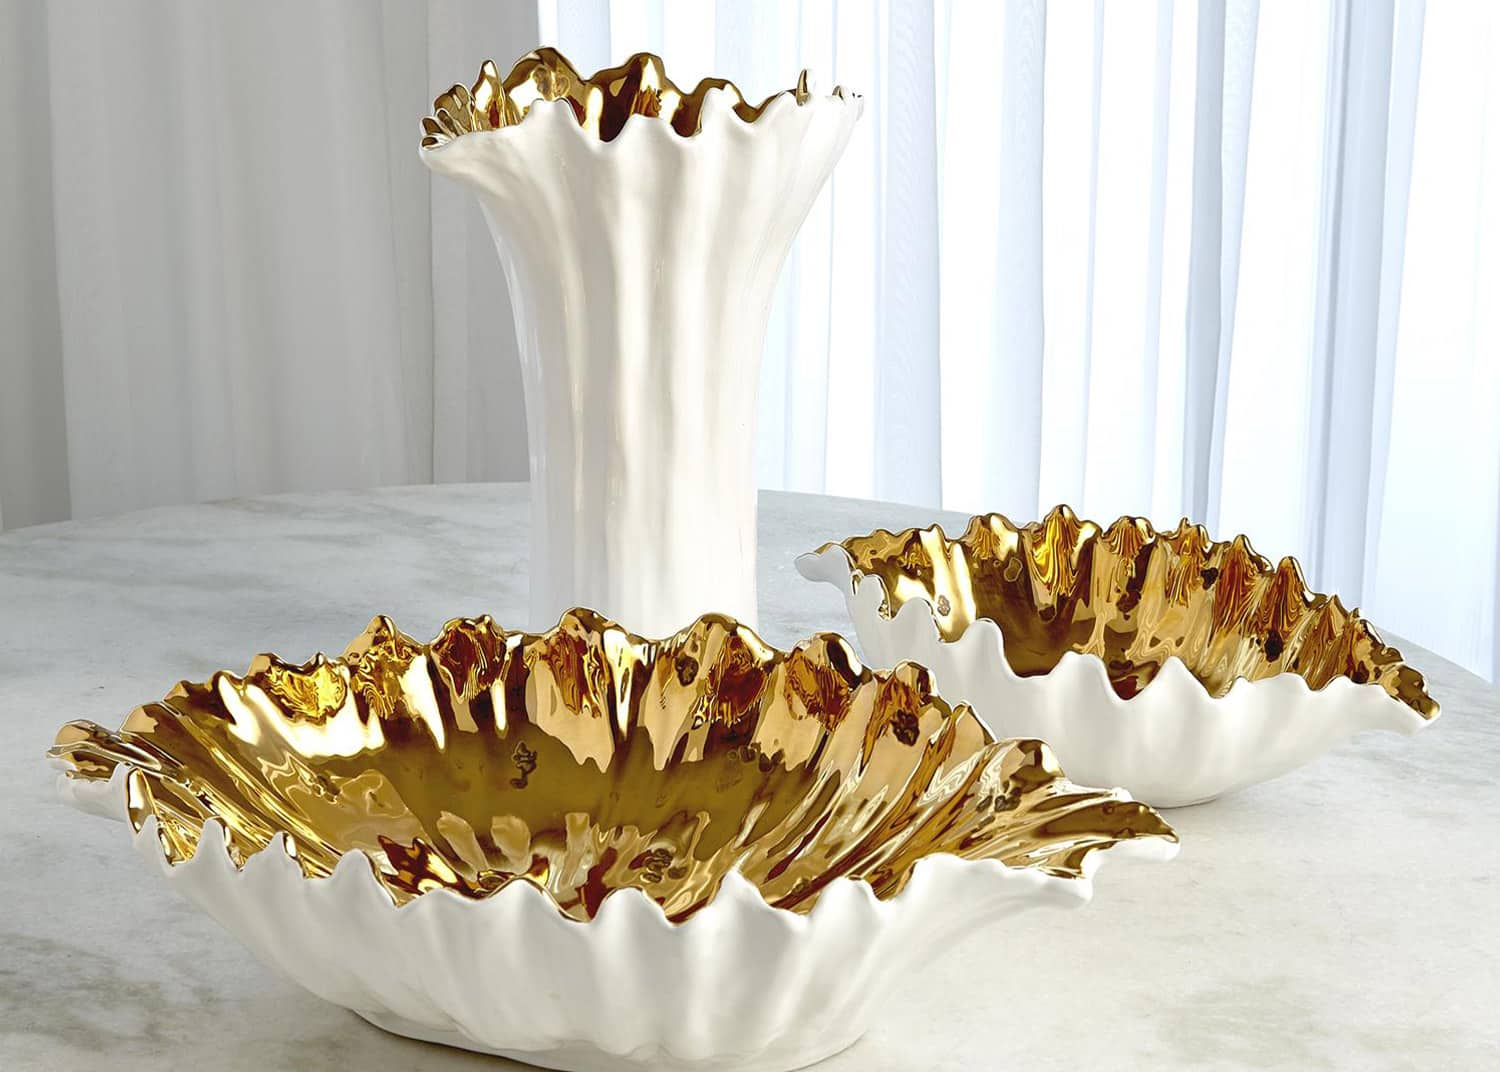 White and gold decorative bowls